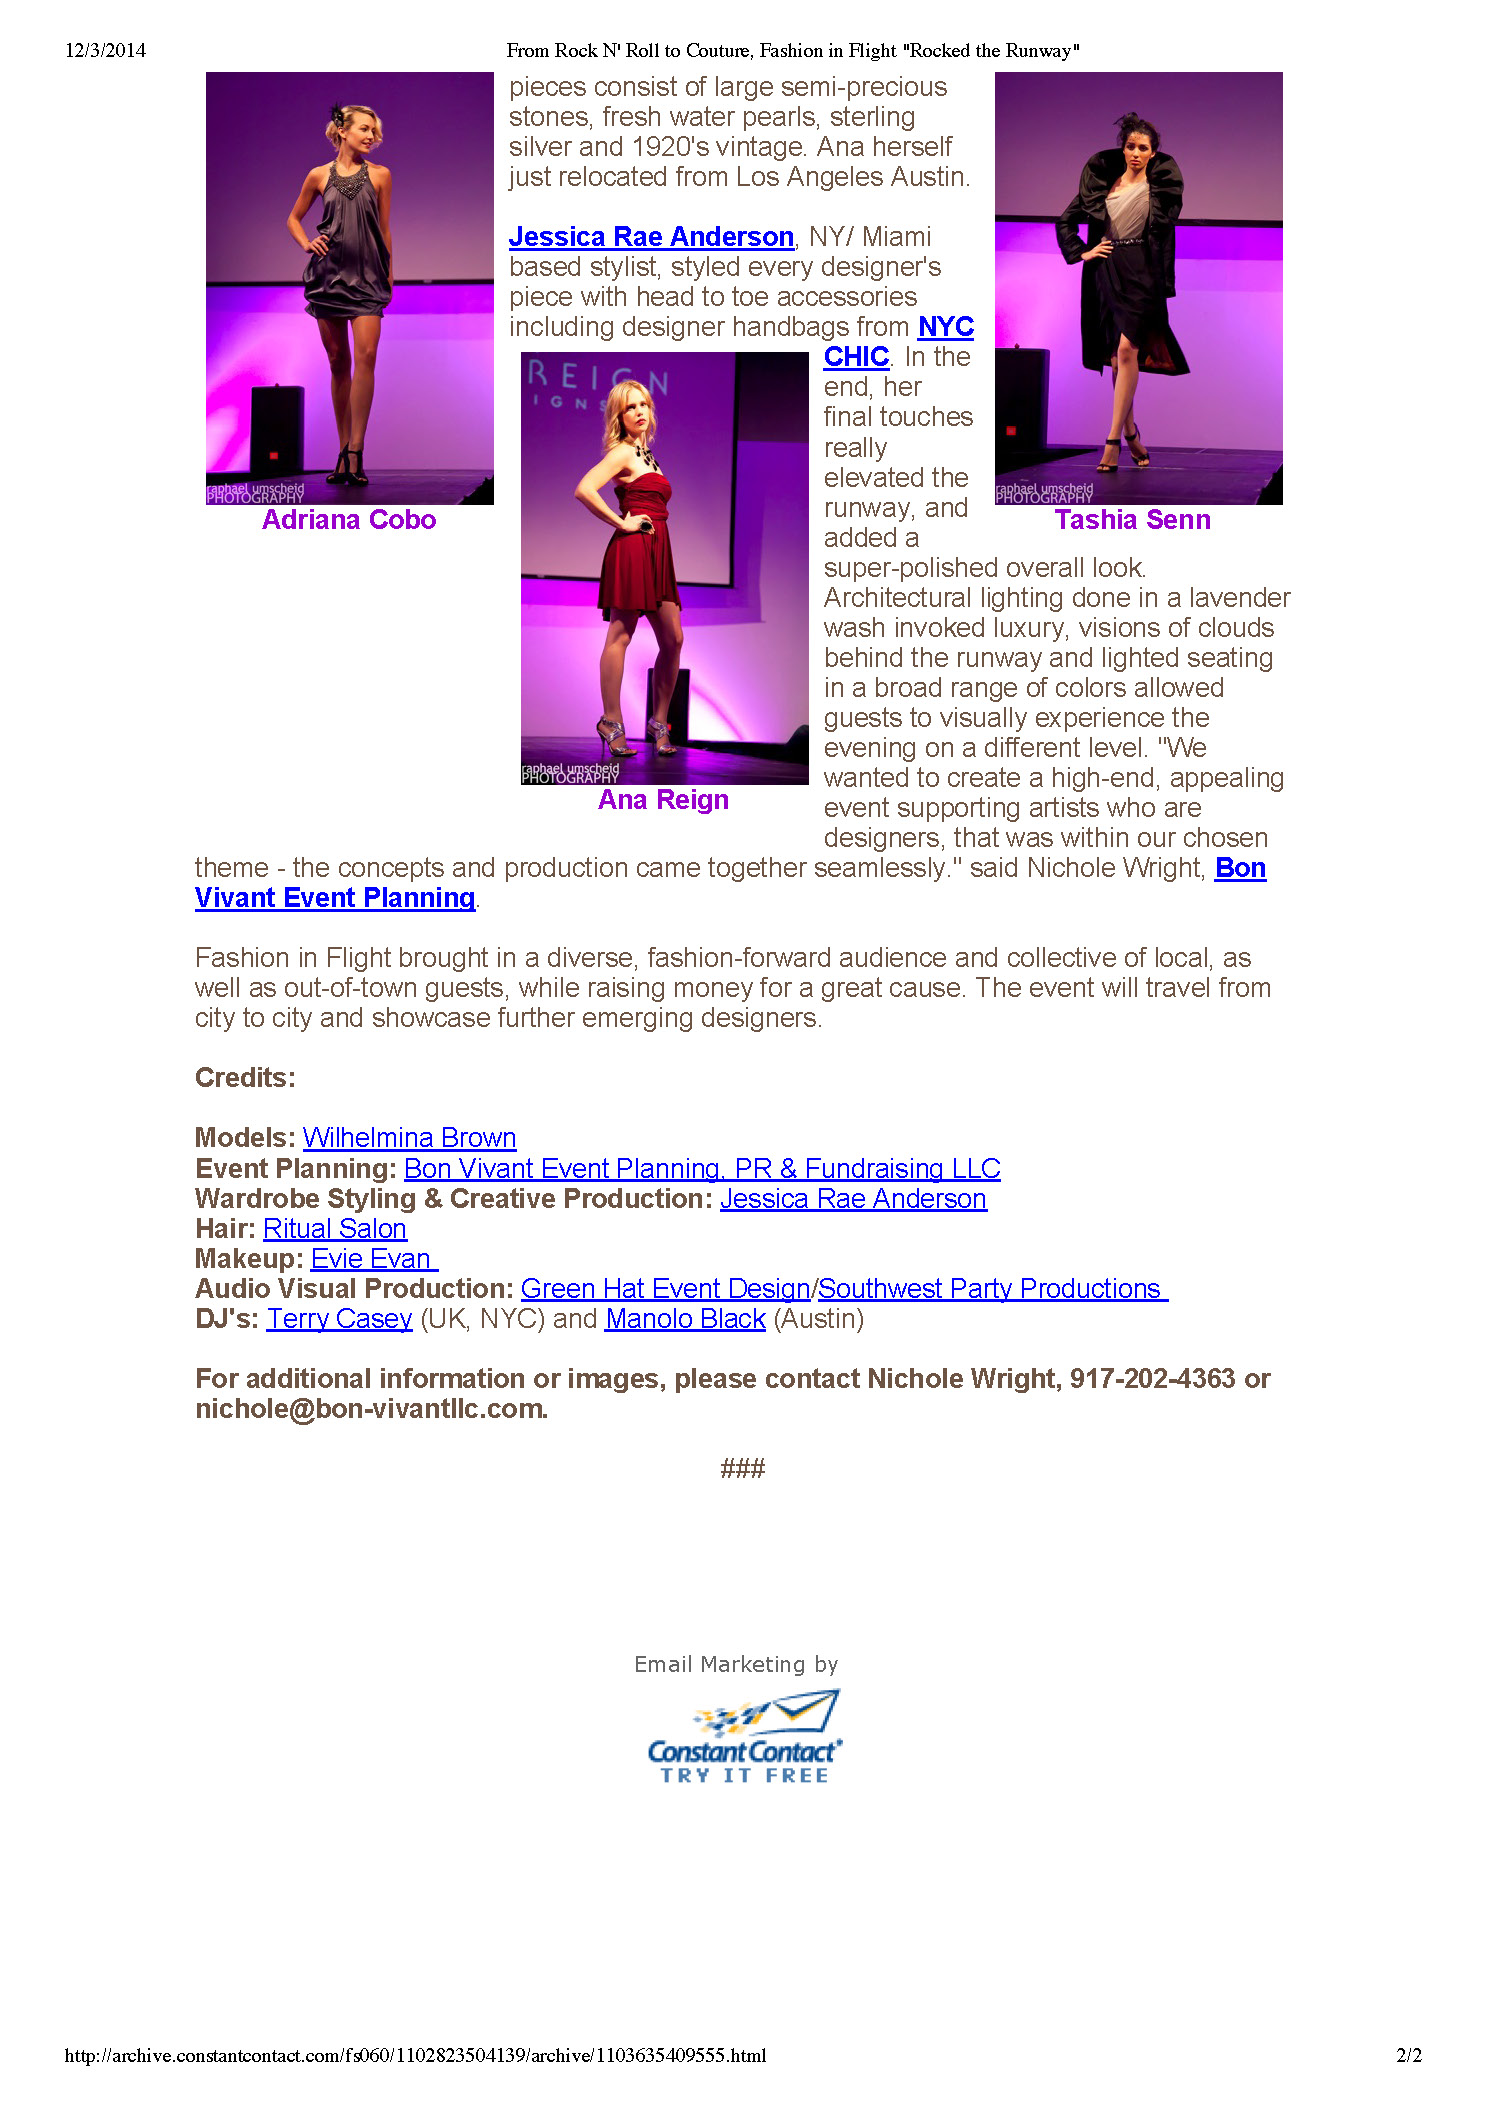 """Preview of """"From Rock N' Roll to Cou...ght %22Rocked the Runway%22""""_Page_2.jpg"""